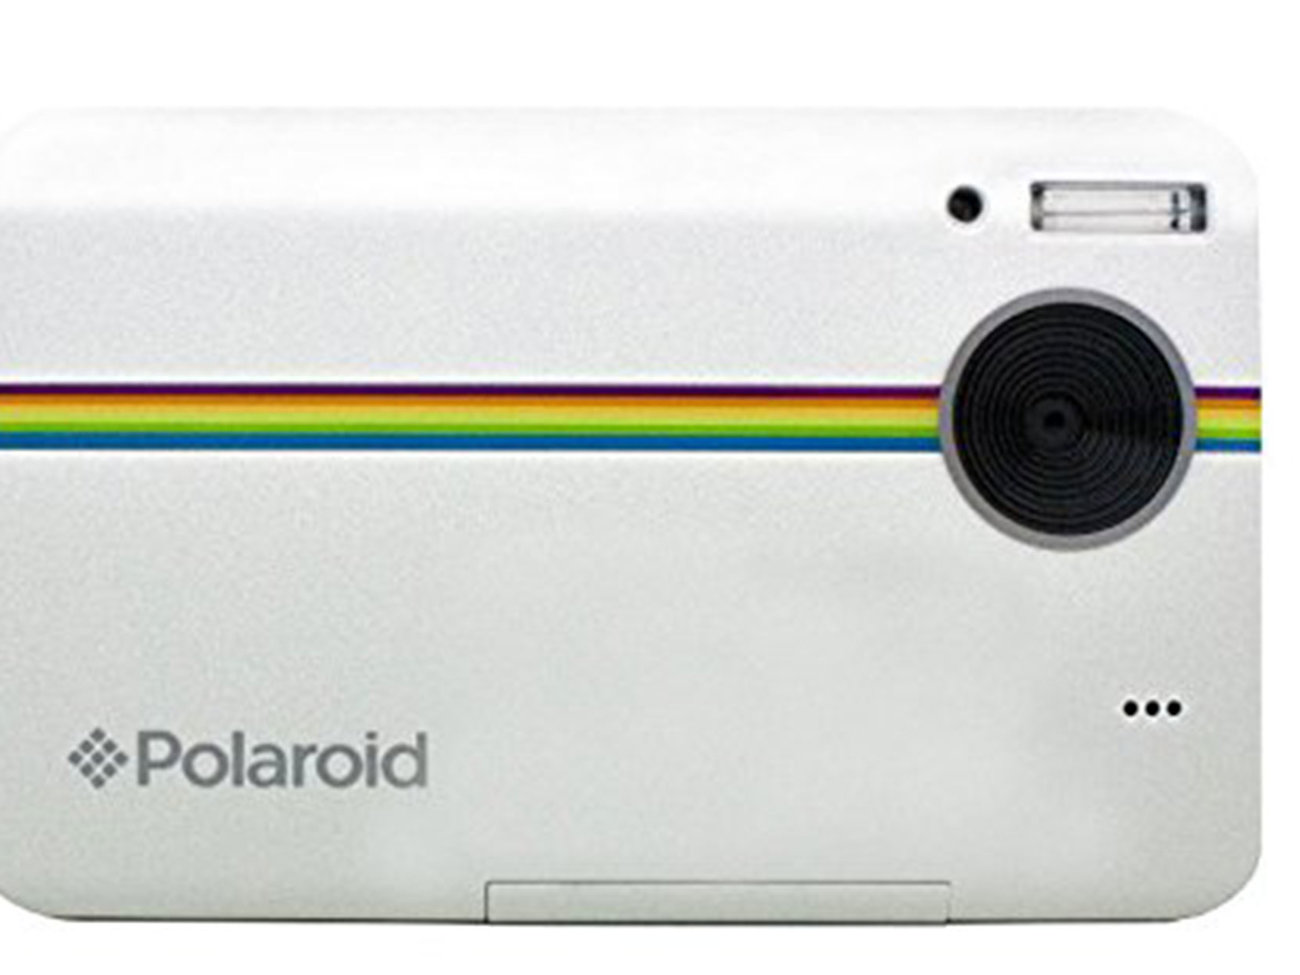 polaroid-digital-camera-GG1215.jpg